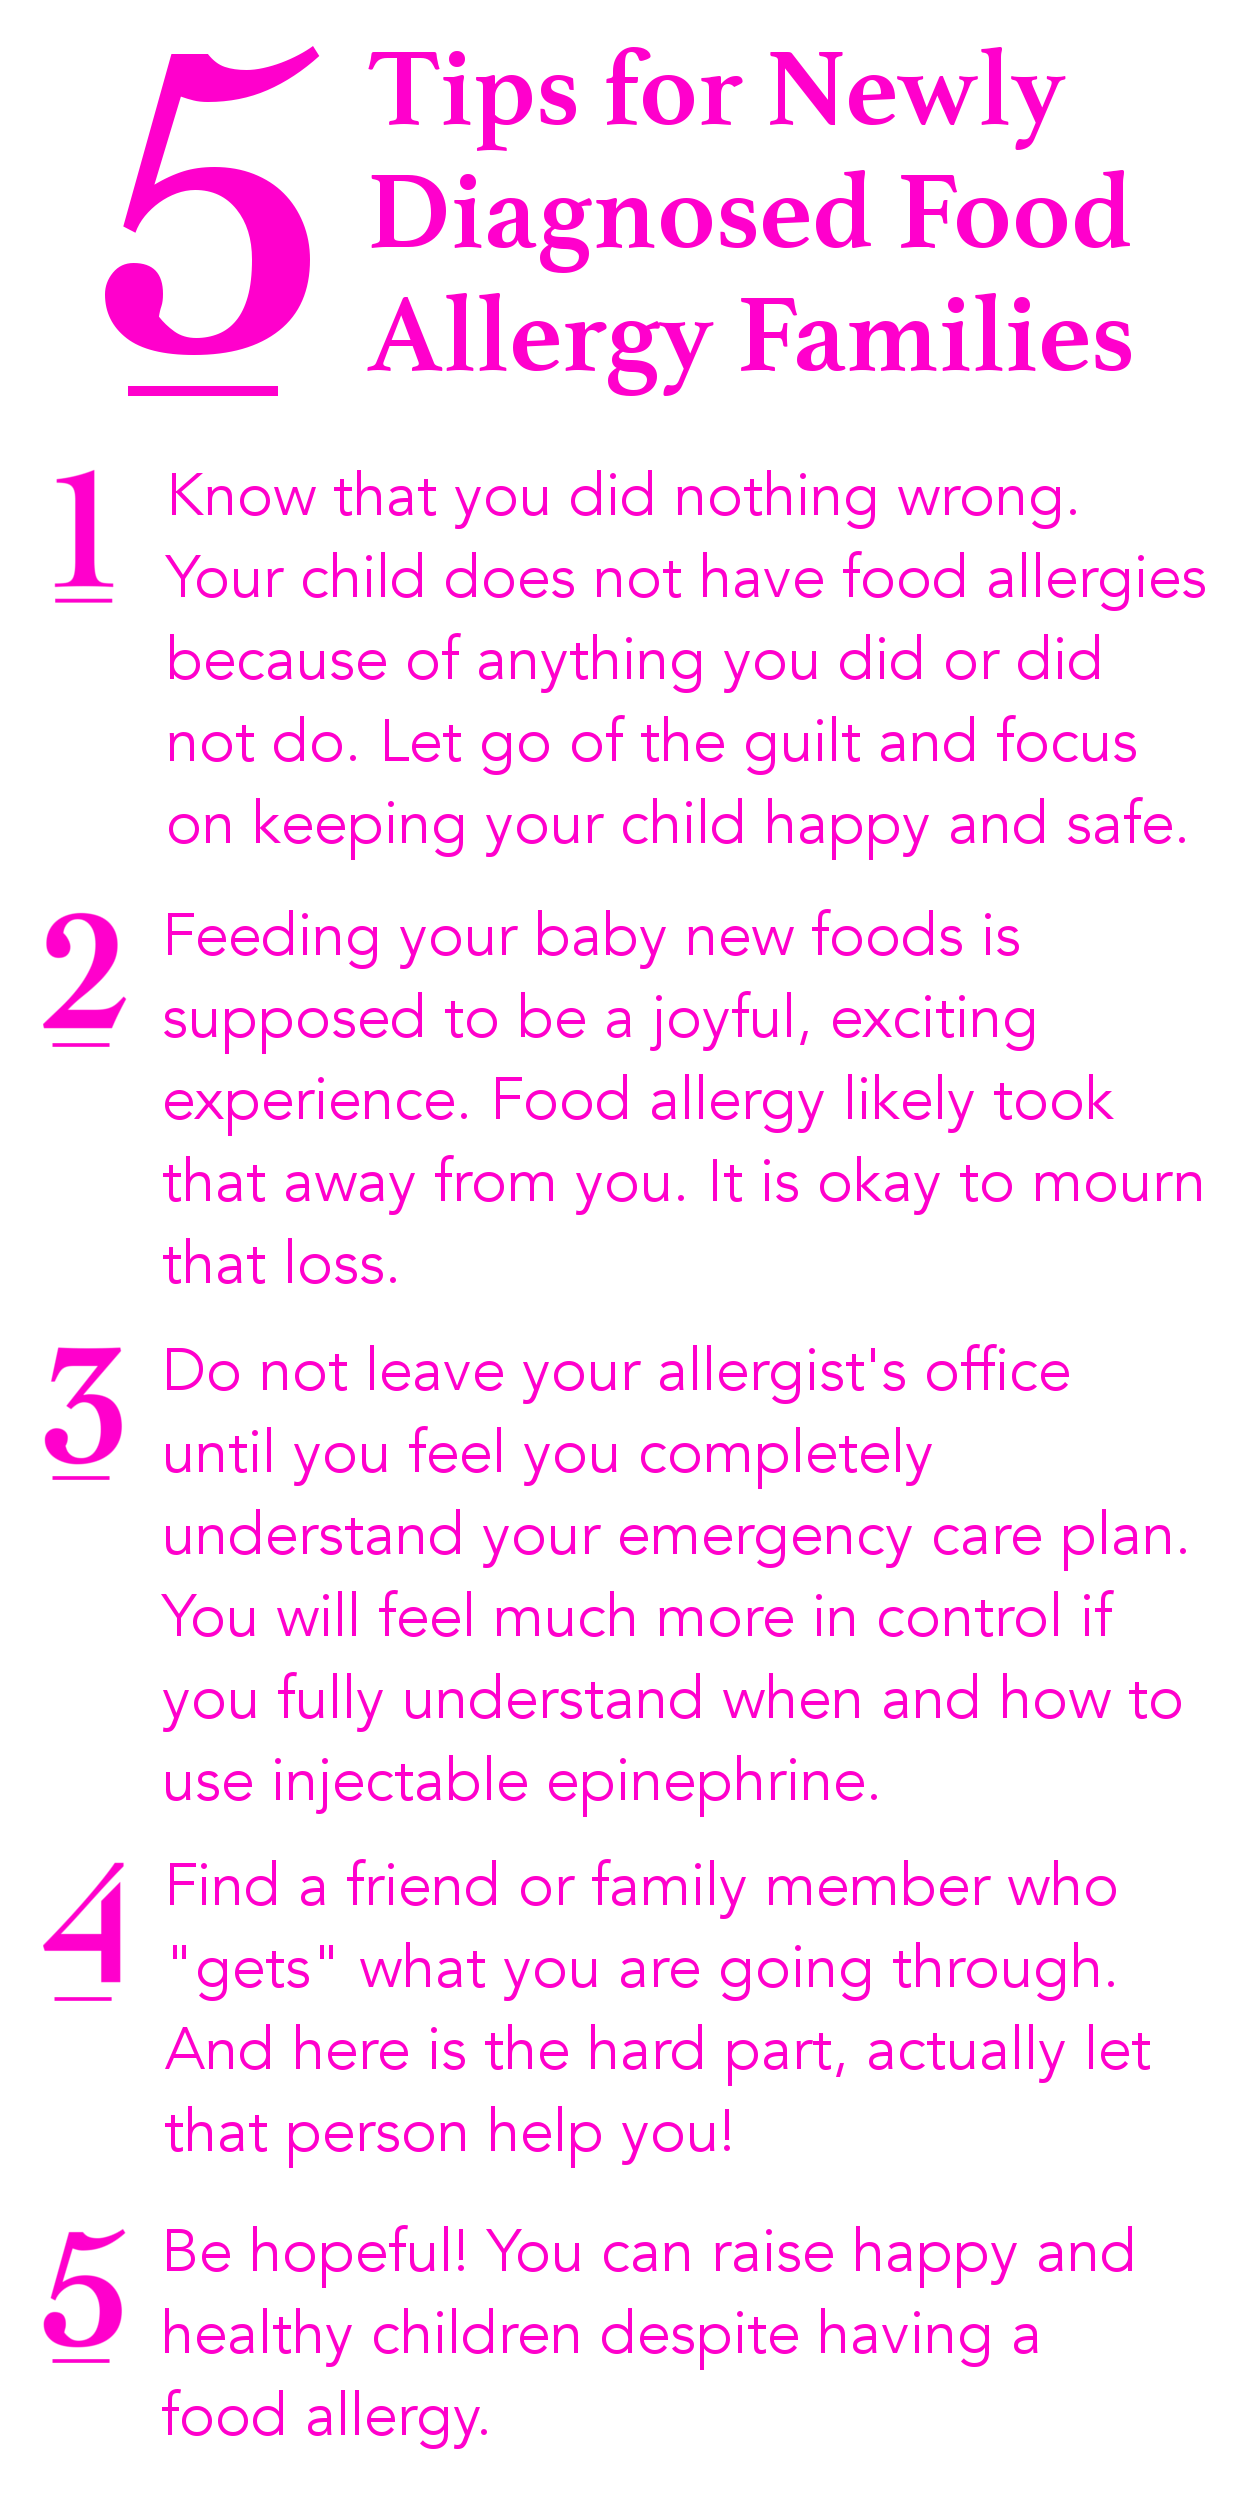 5 Tips for Newly Diagnosed Food Allergy Families